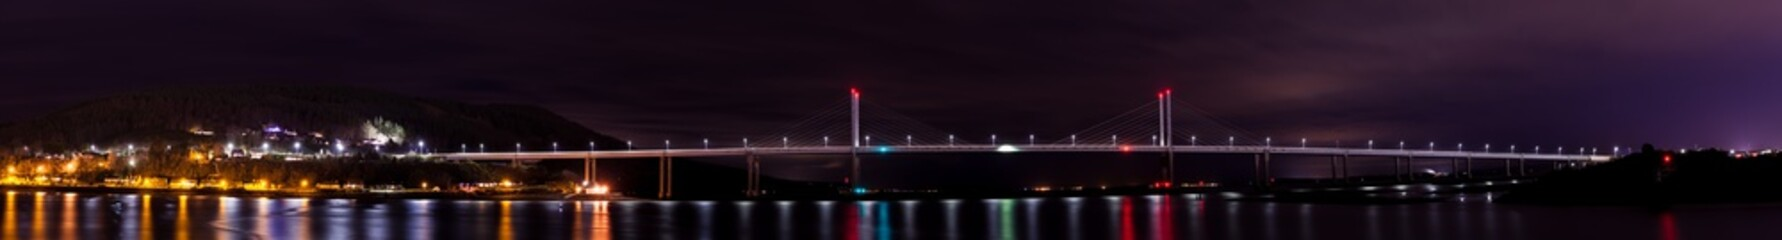 Moray Firth Inverness Night Landscape